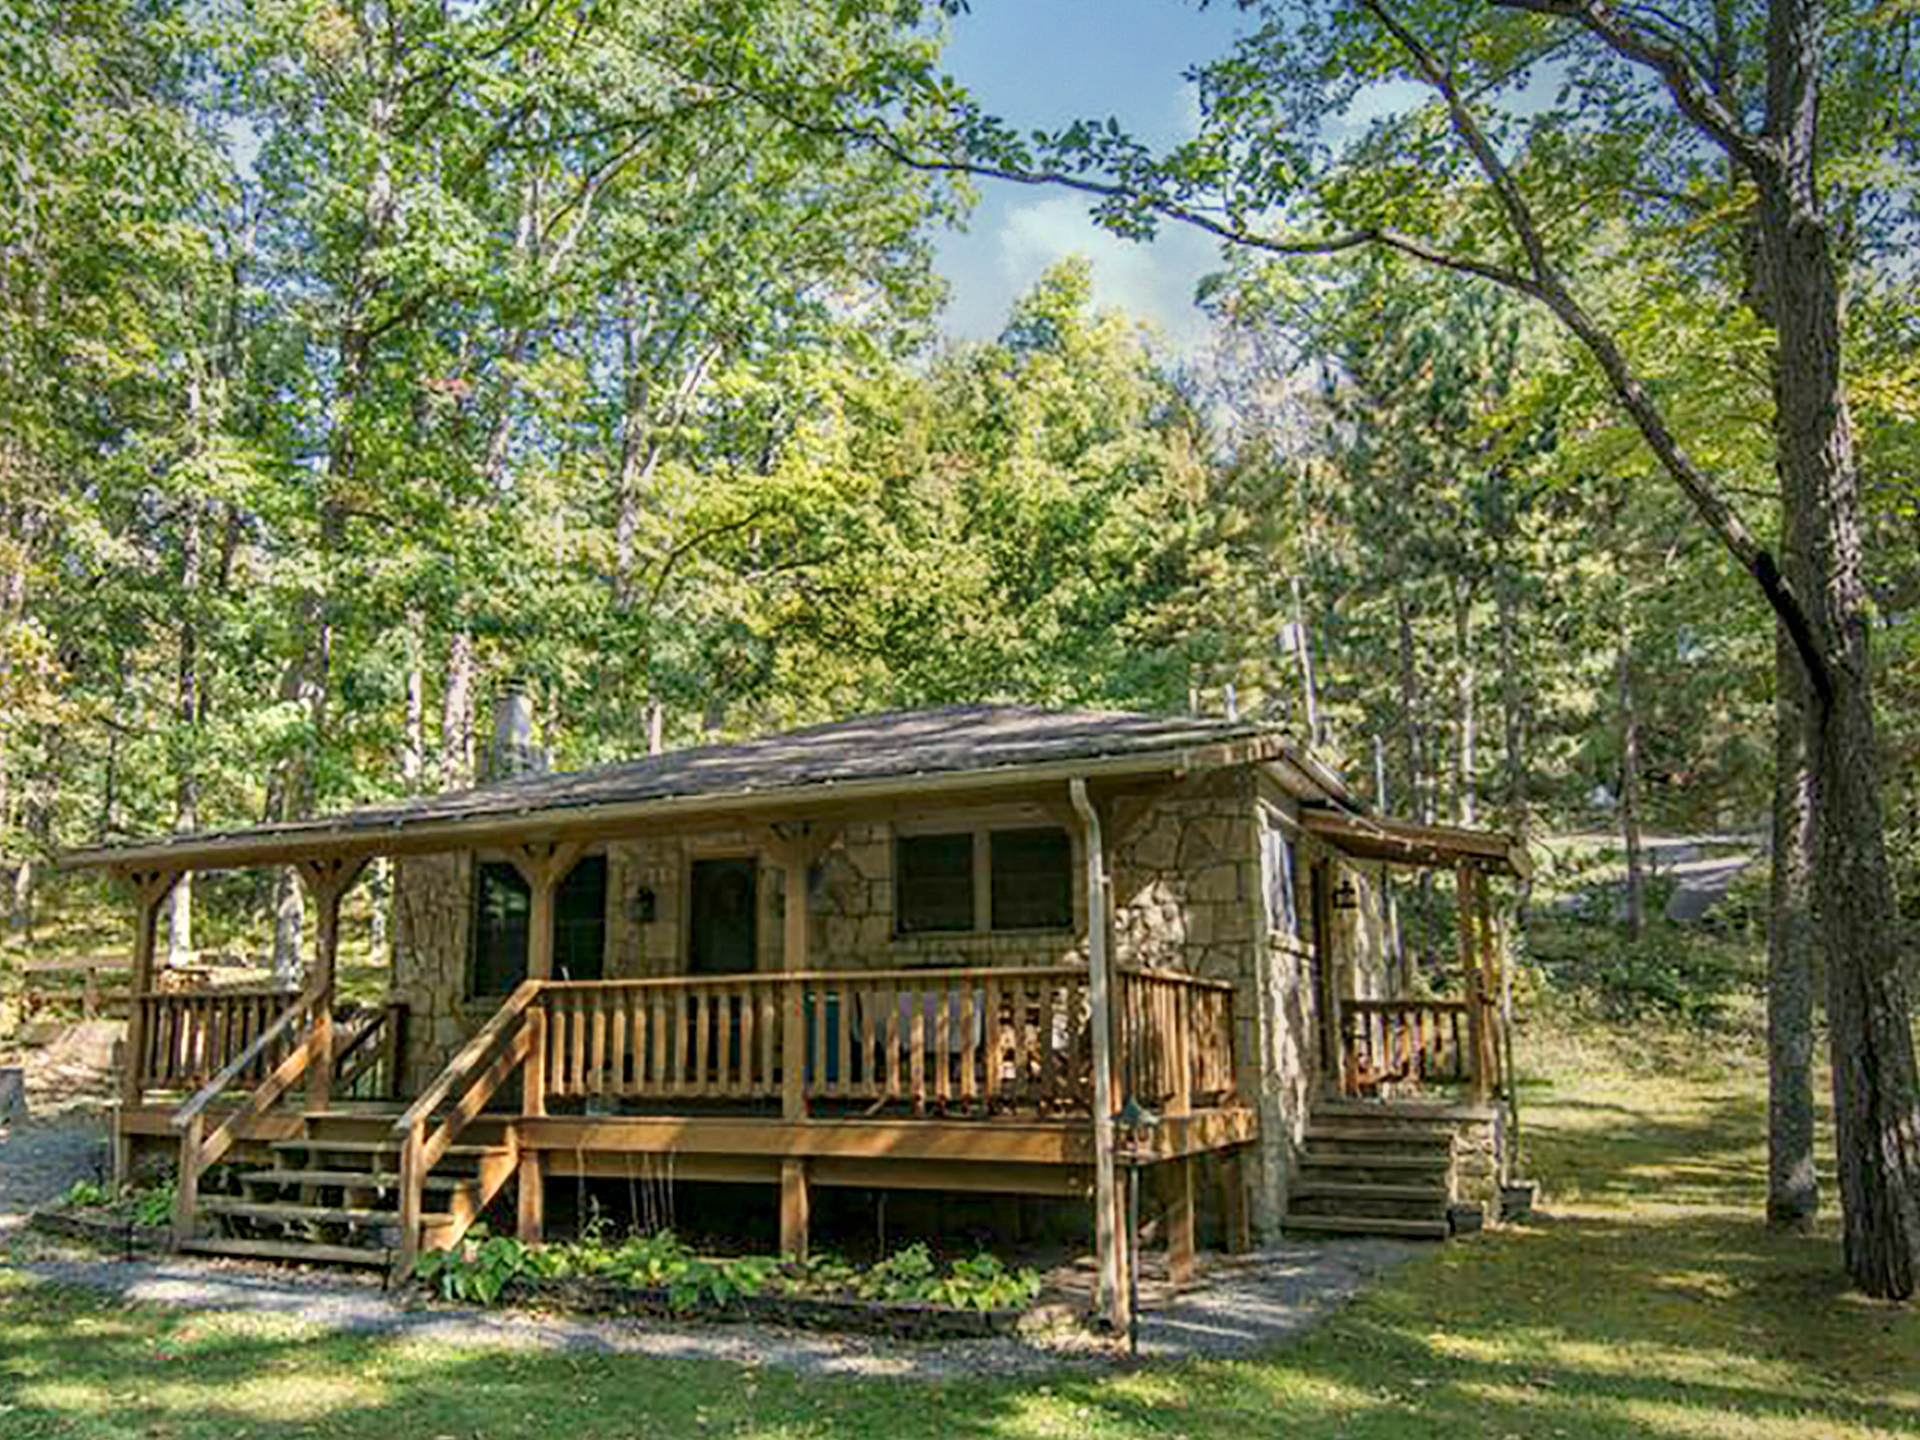 rental a boat honeymoon lodging maryland at trees among cabin of creek company rentals deep cabins pine in view md grove pontoon lake front